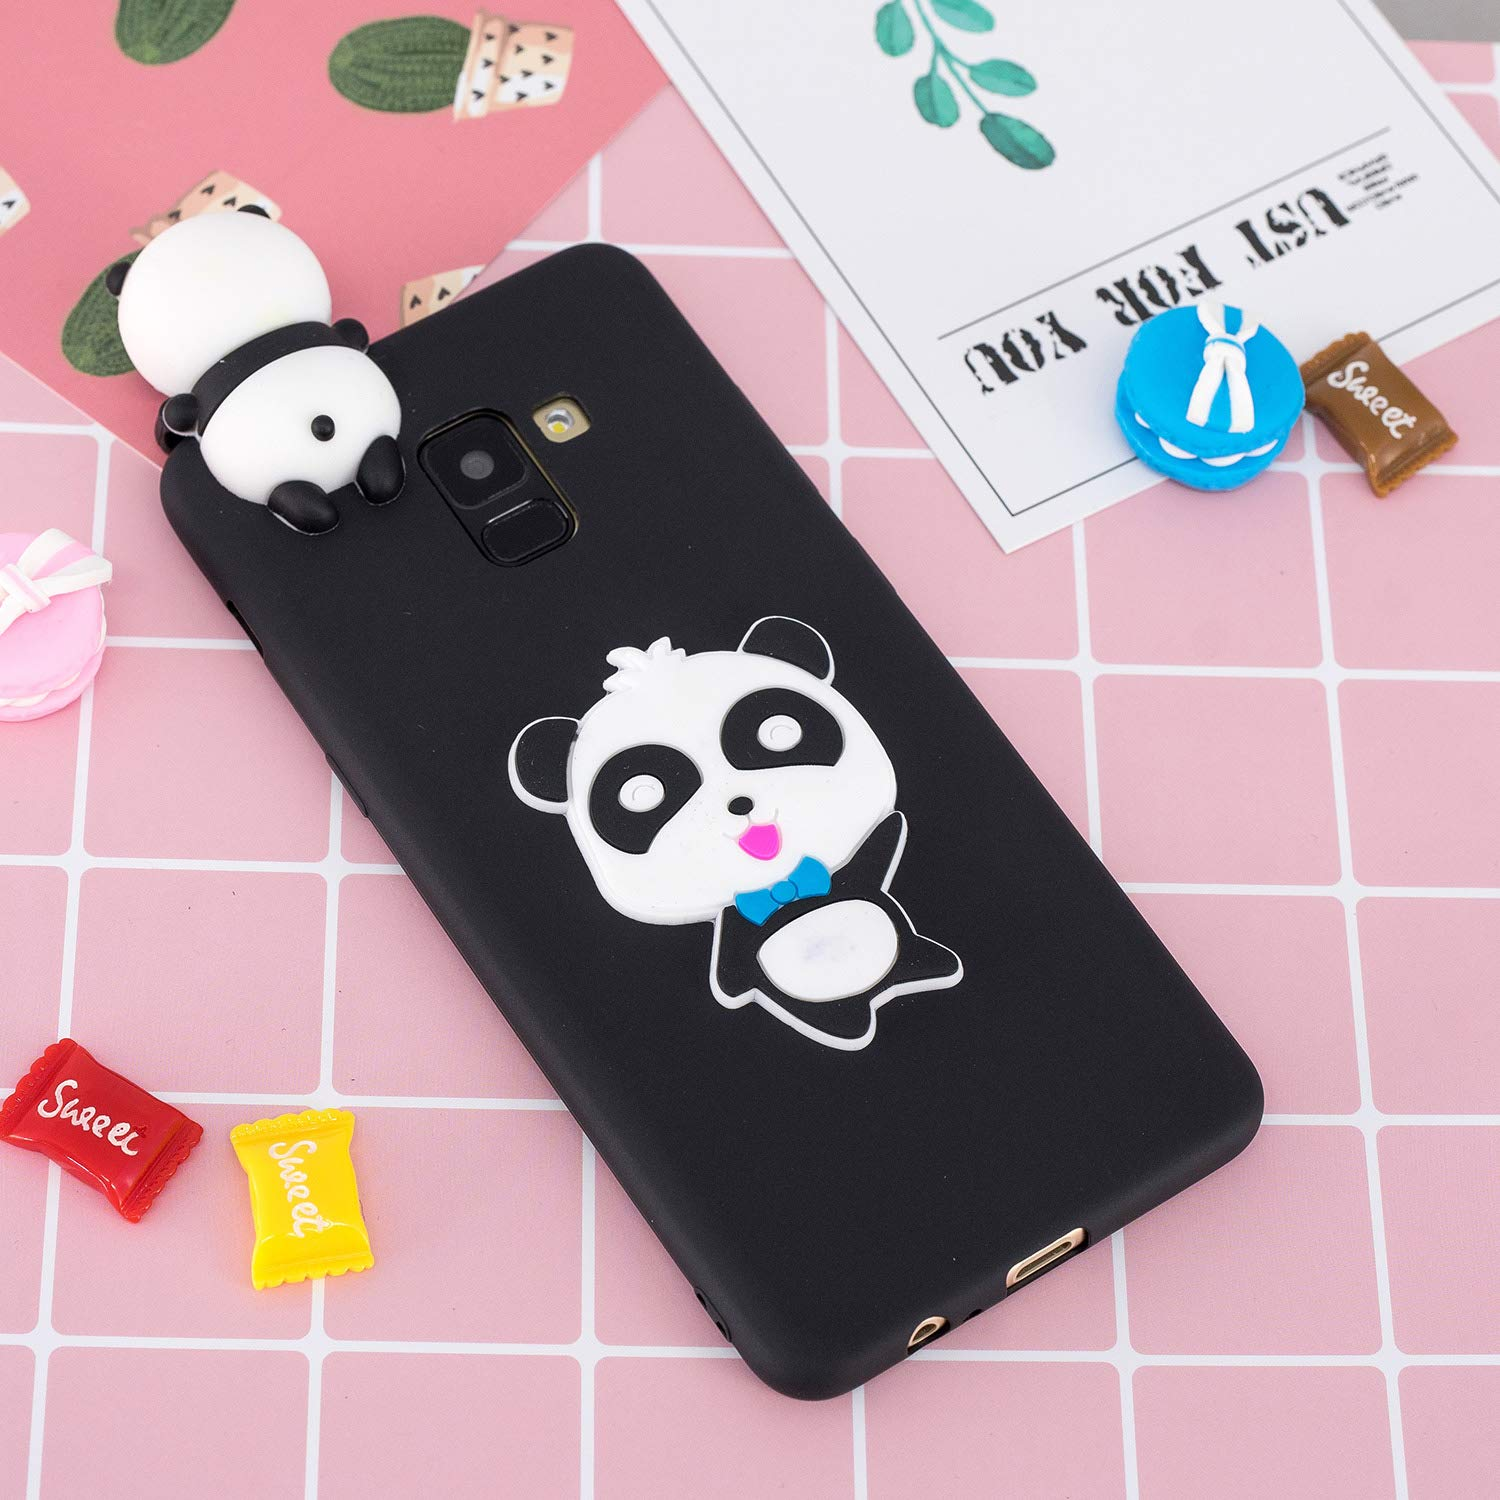 for Samsung Galaxy A8 2018 Silicone Case with Screen Protector,QFFUN 3D Cartoon [Panda] Pattern Design Soft Flexible Slim Fit Gel Rubber Cover,Shockproof Anti-Scratch Protective Case Bumper by QFFUN (Image #6)